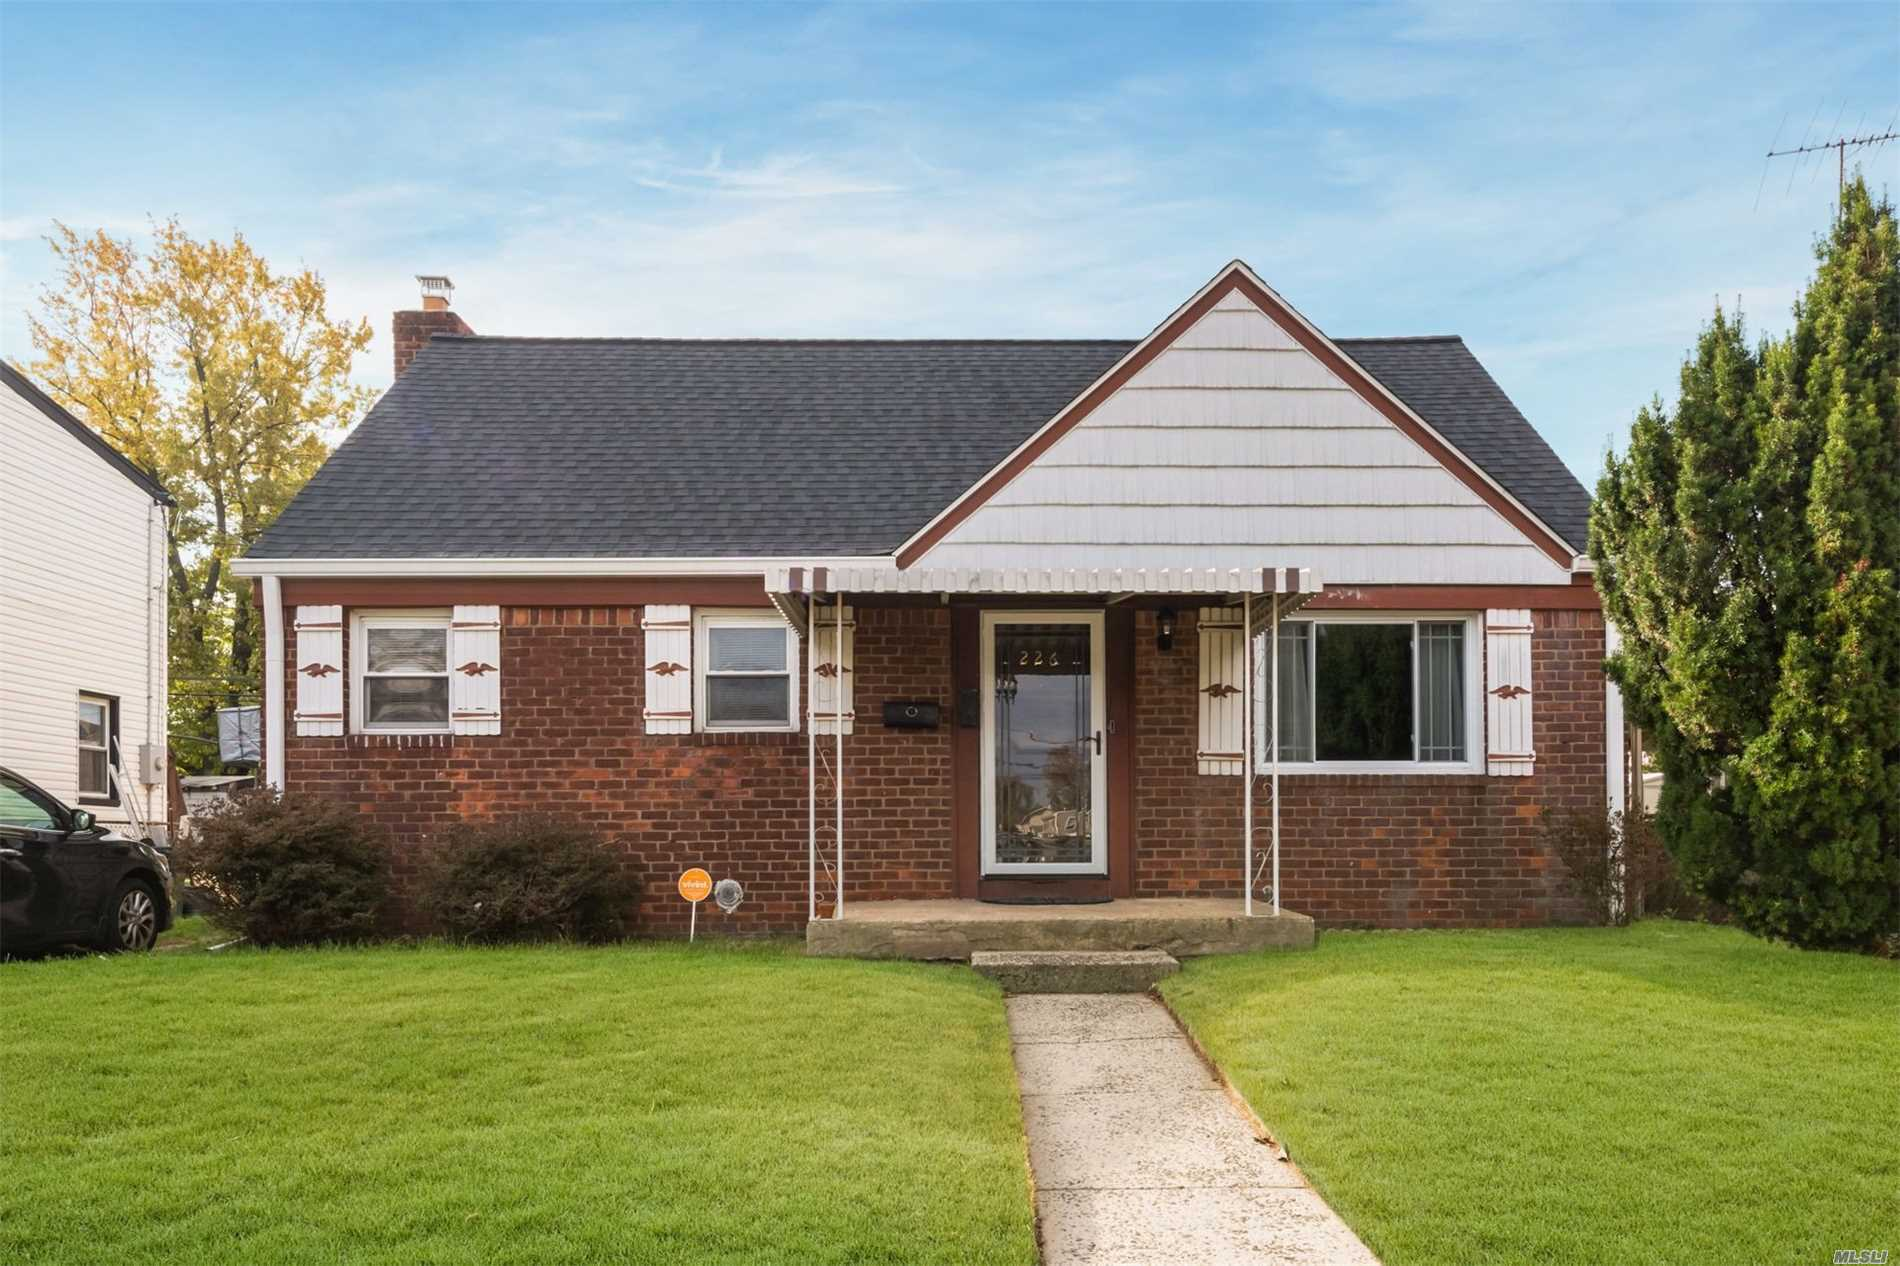 A Warm And Inviting Home With Wood Floors, A Sunroom, Large Basement, Formal Dining Room, Nice Size Bedrooms With Lots Of Closets Located In The Quite Residential Area Of Elmont.